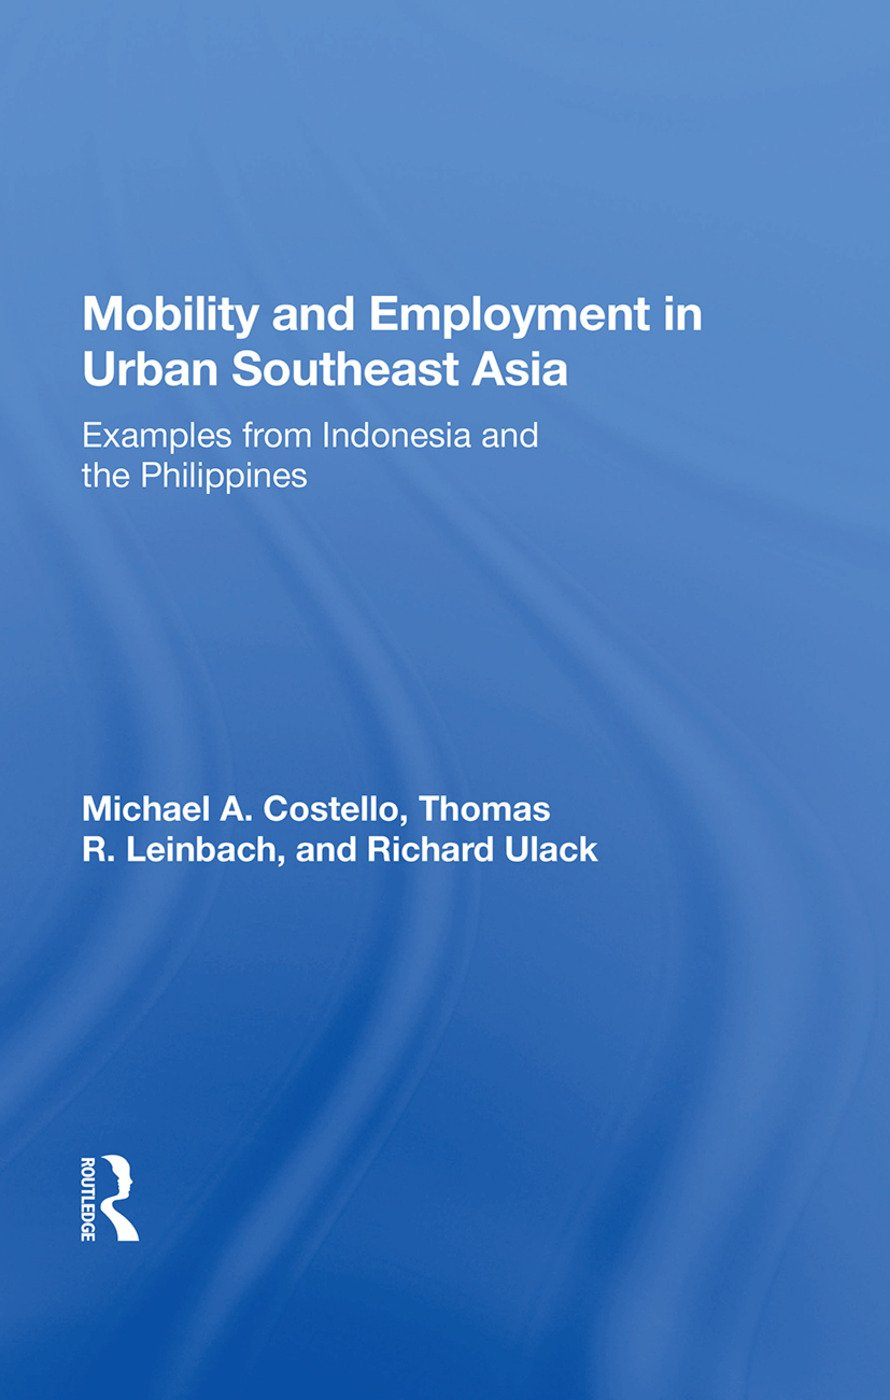 Mobility and Employment in Urban Southeast Asia: Examples from Indonesia and the Philippines book cover